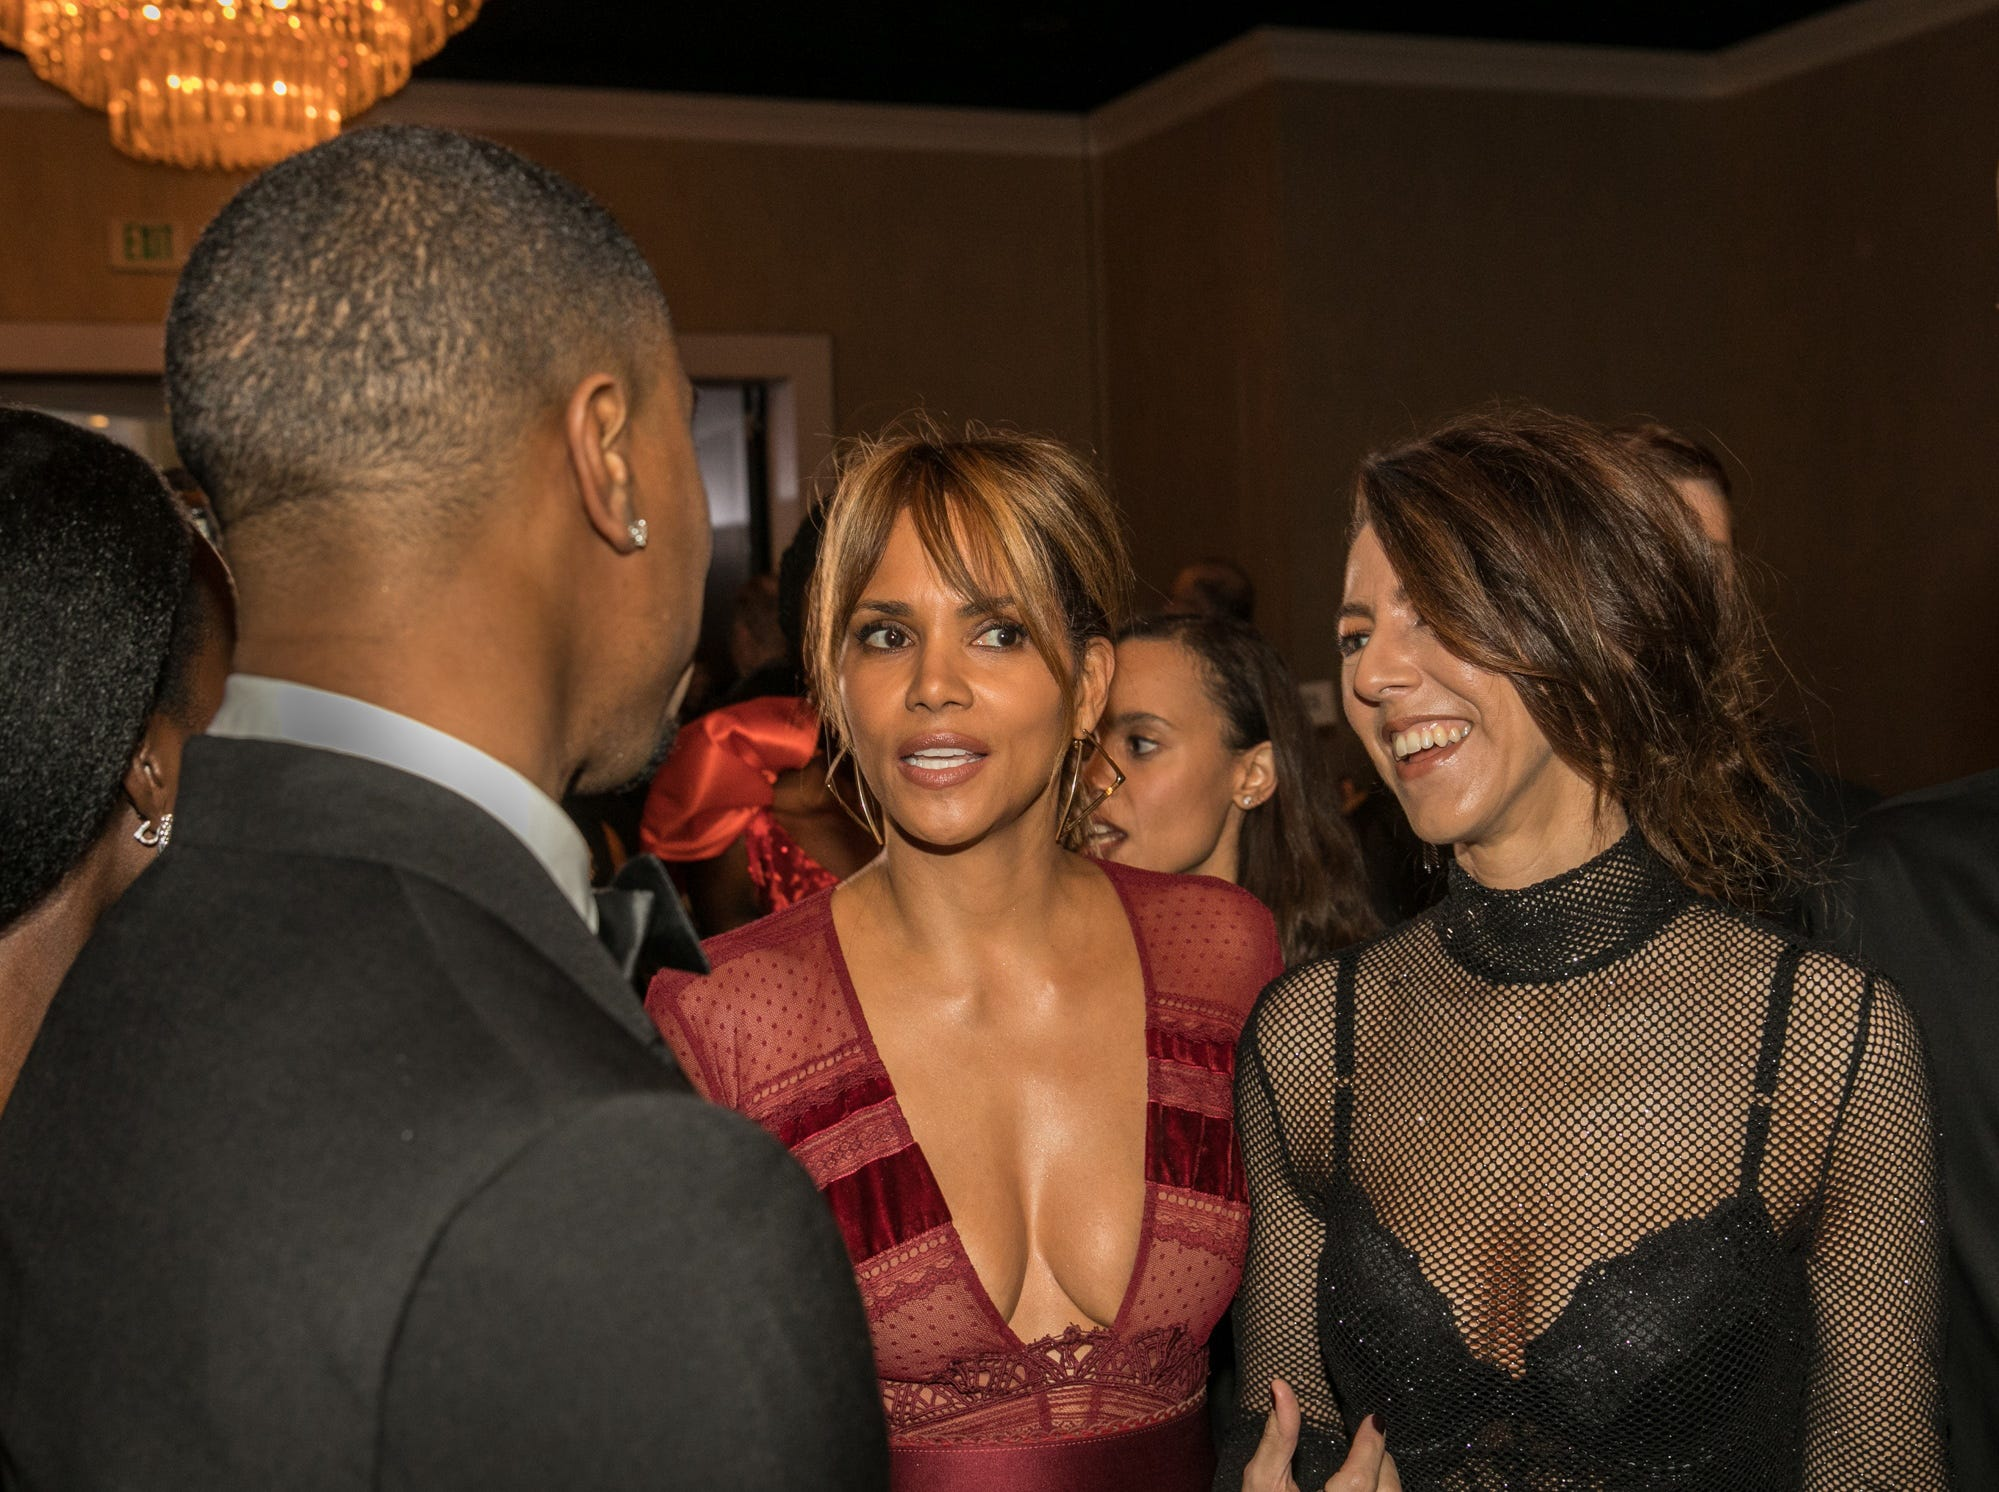 Jan 6, 2019; Beverly Hills, CA, USA; Halle Berry arrives during the 76th Golden Globe Awards in the International Ballroom at the Beverly Hilton. Mandatory Credit: David Sprague-USA TODAY ORIG FILE ID:  20190106_ajw_ooo_470.jpg